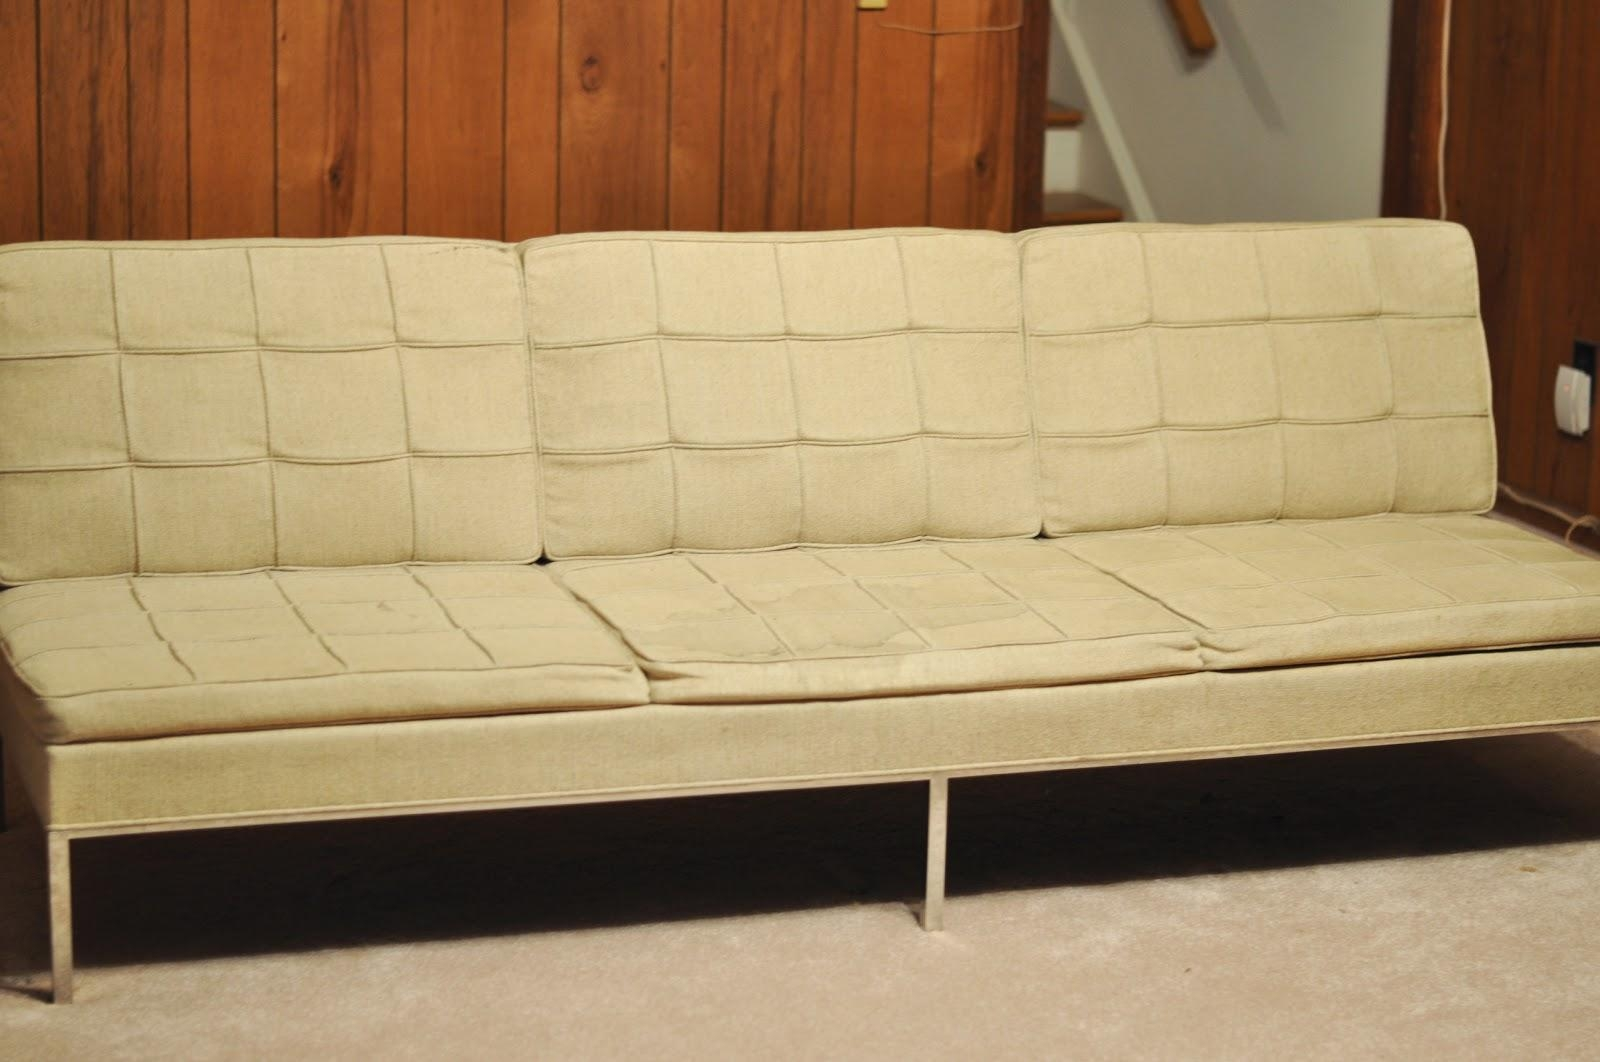 A Treasure In Storage: The Florence Knoll Sofa Comes Home | The For Florence Large Sofas (View 19 of 20)